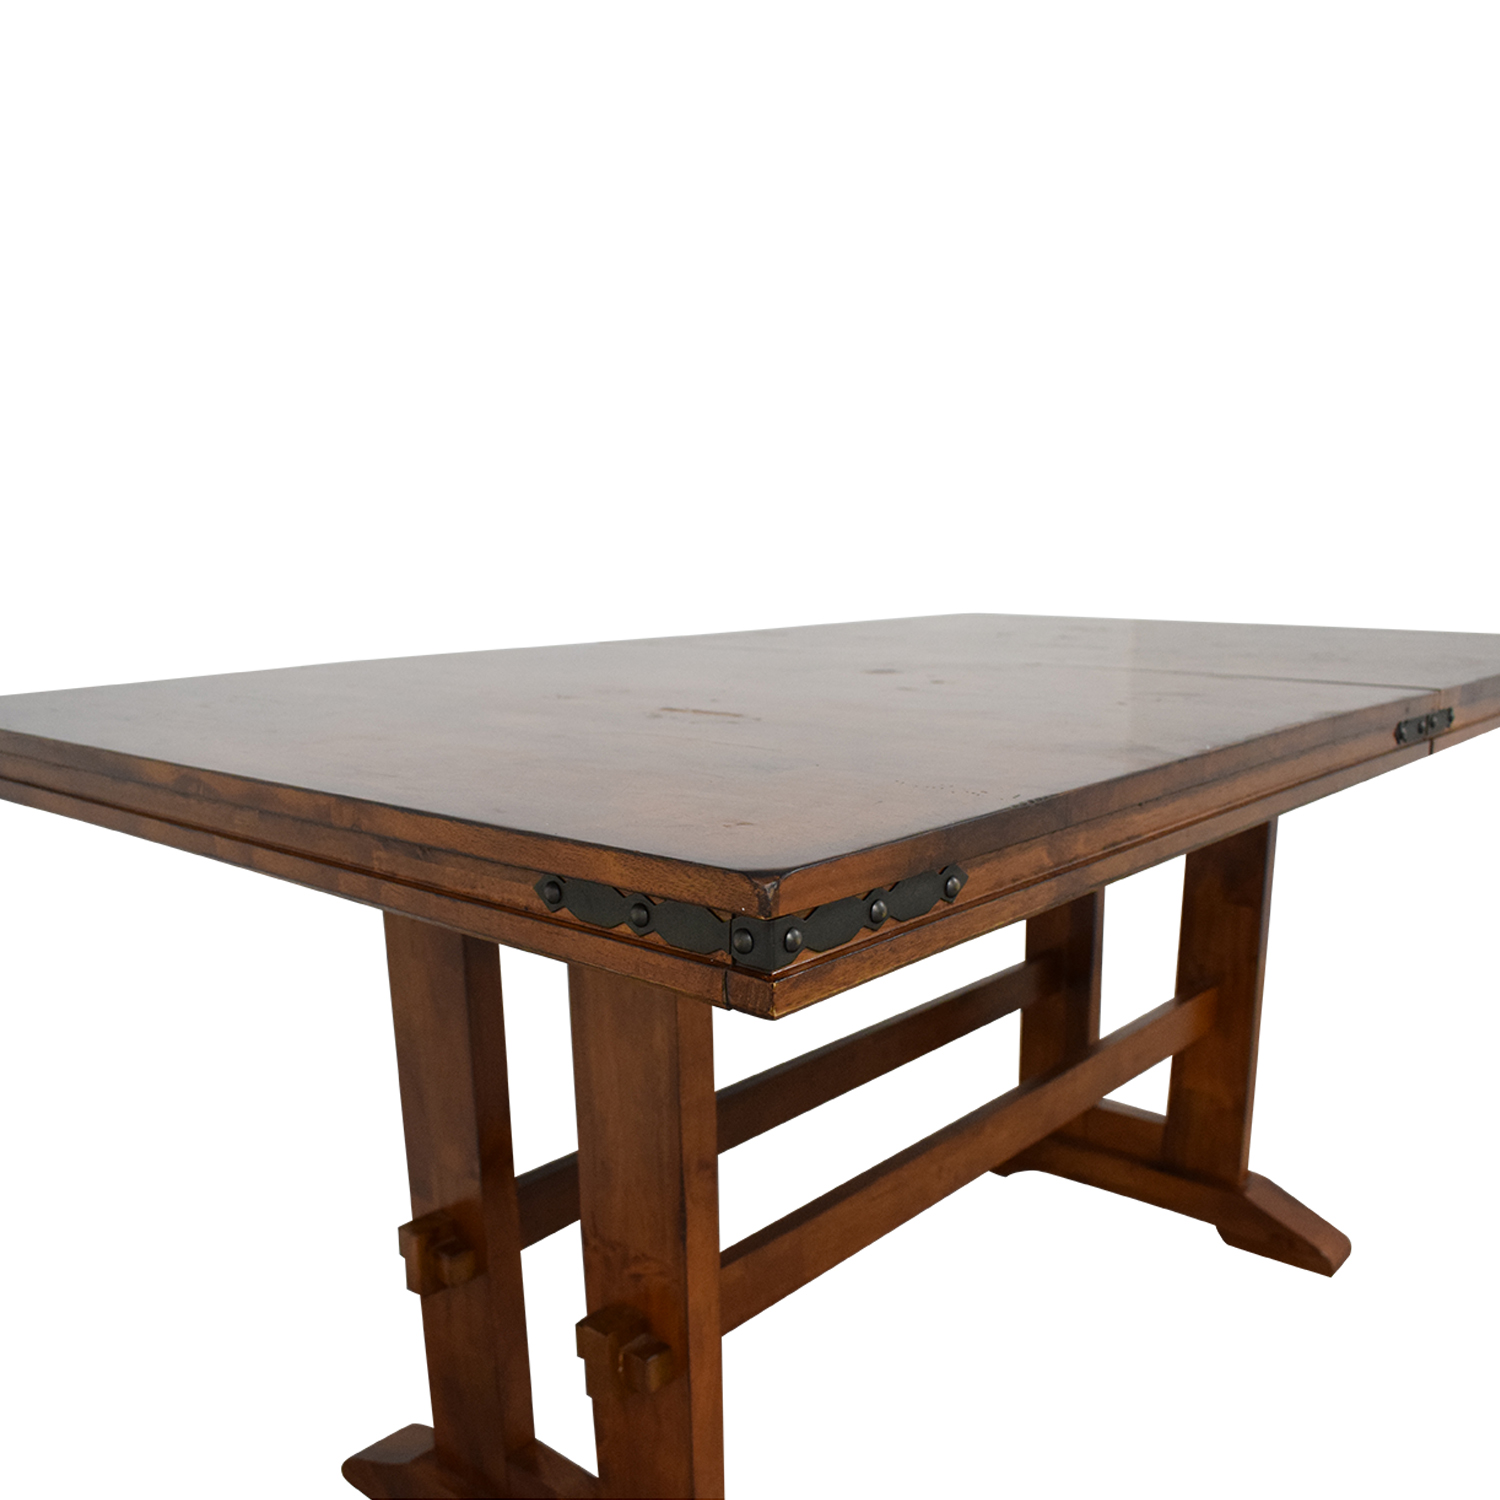 Lenox Lenox Extendable Dining Table price